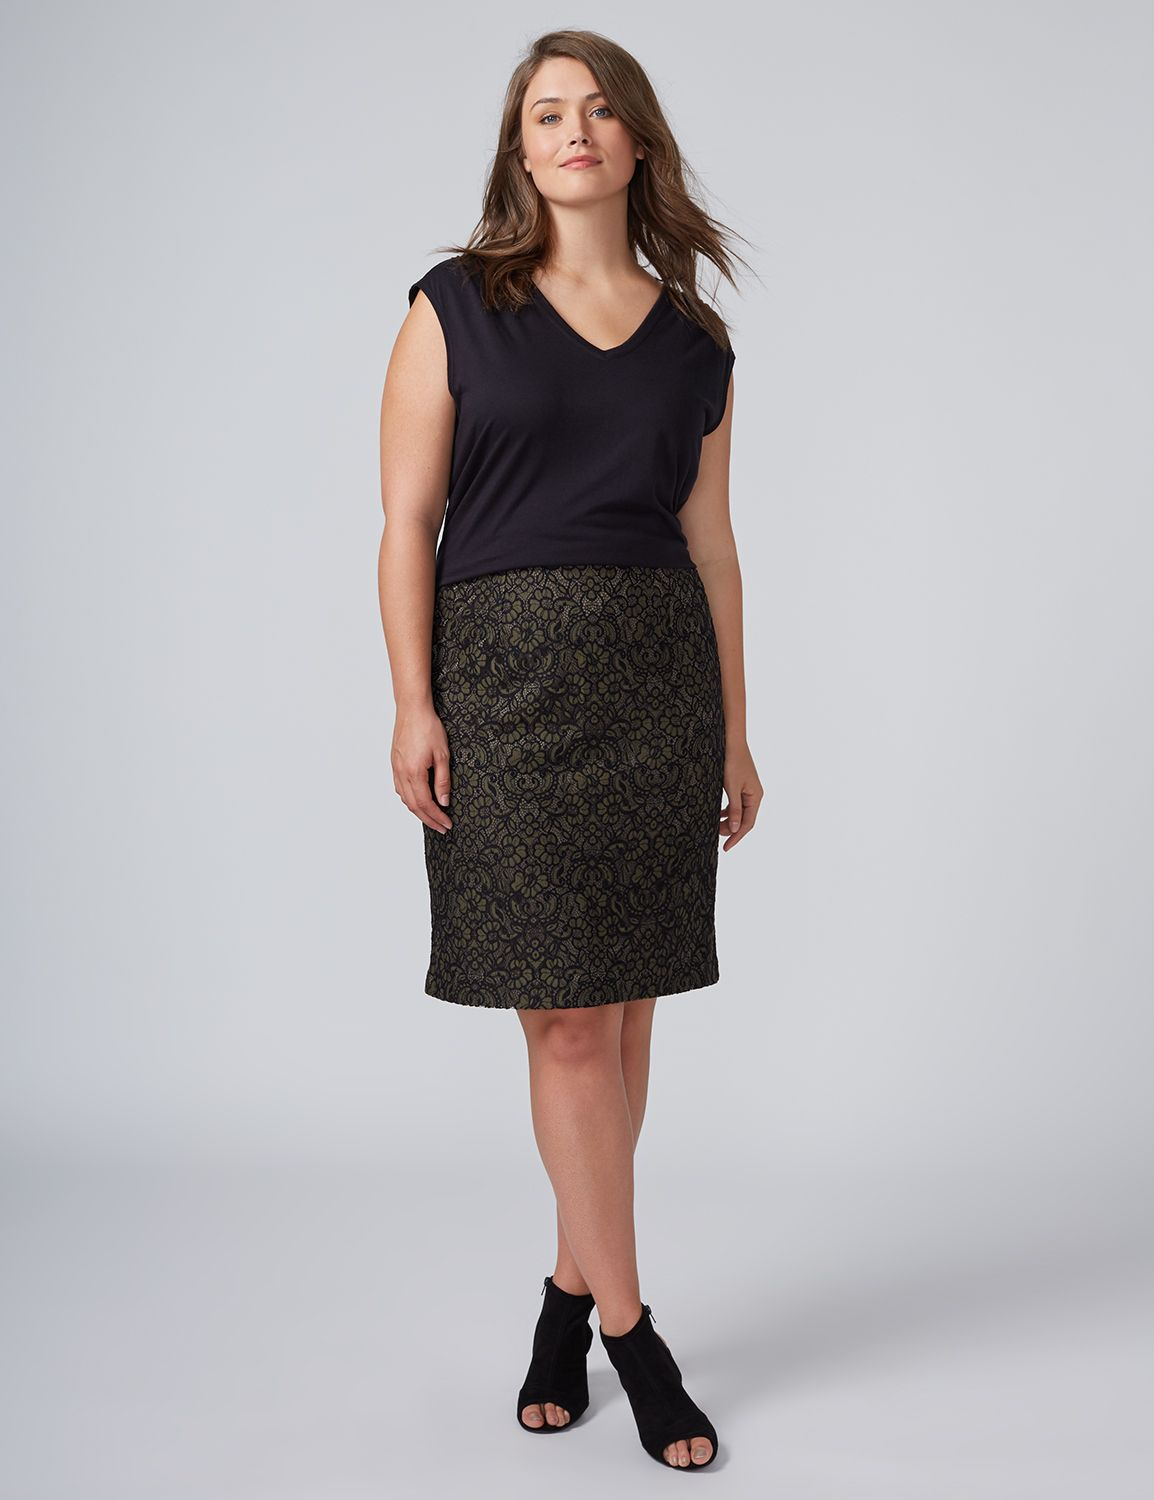 Lane Bryant Womens All-Over Lace Pencil Skirt 14 Dark Olive